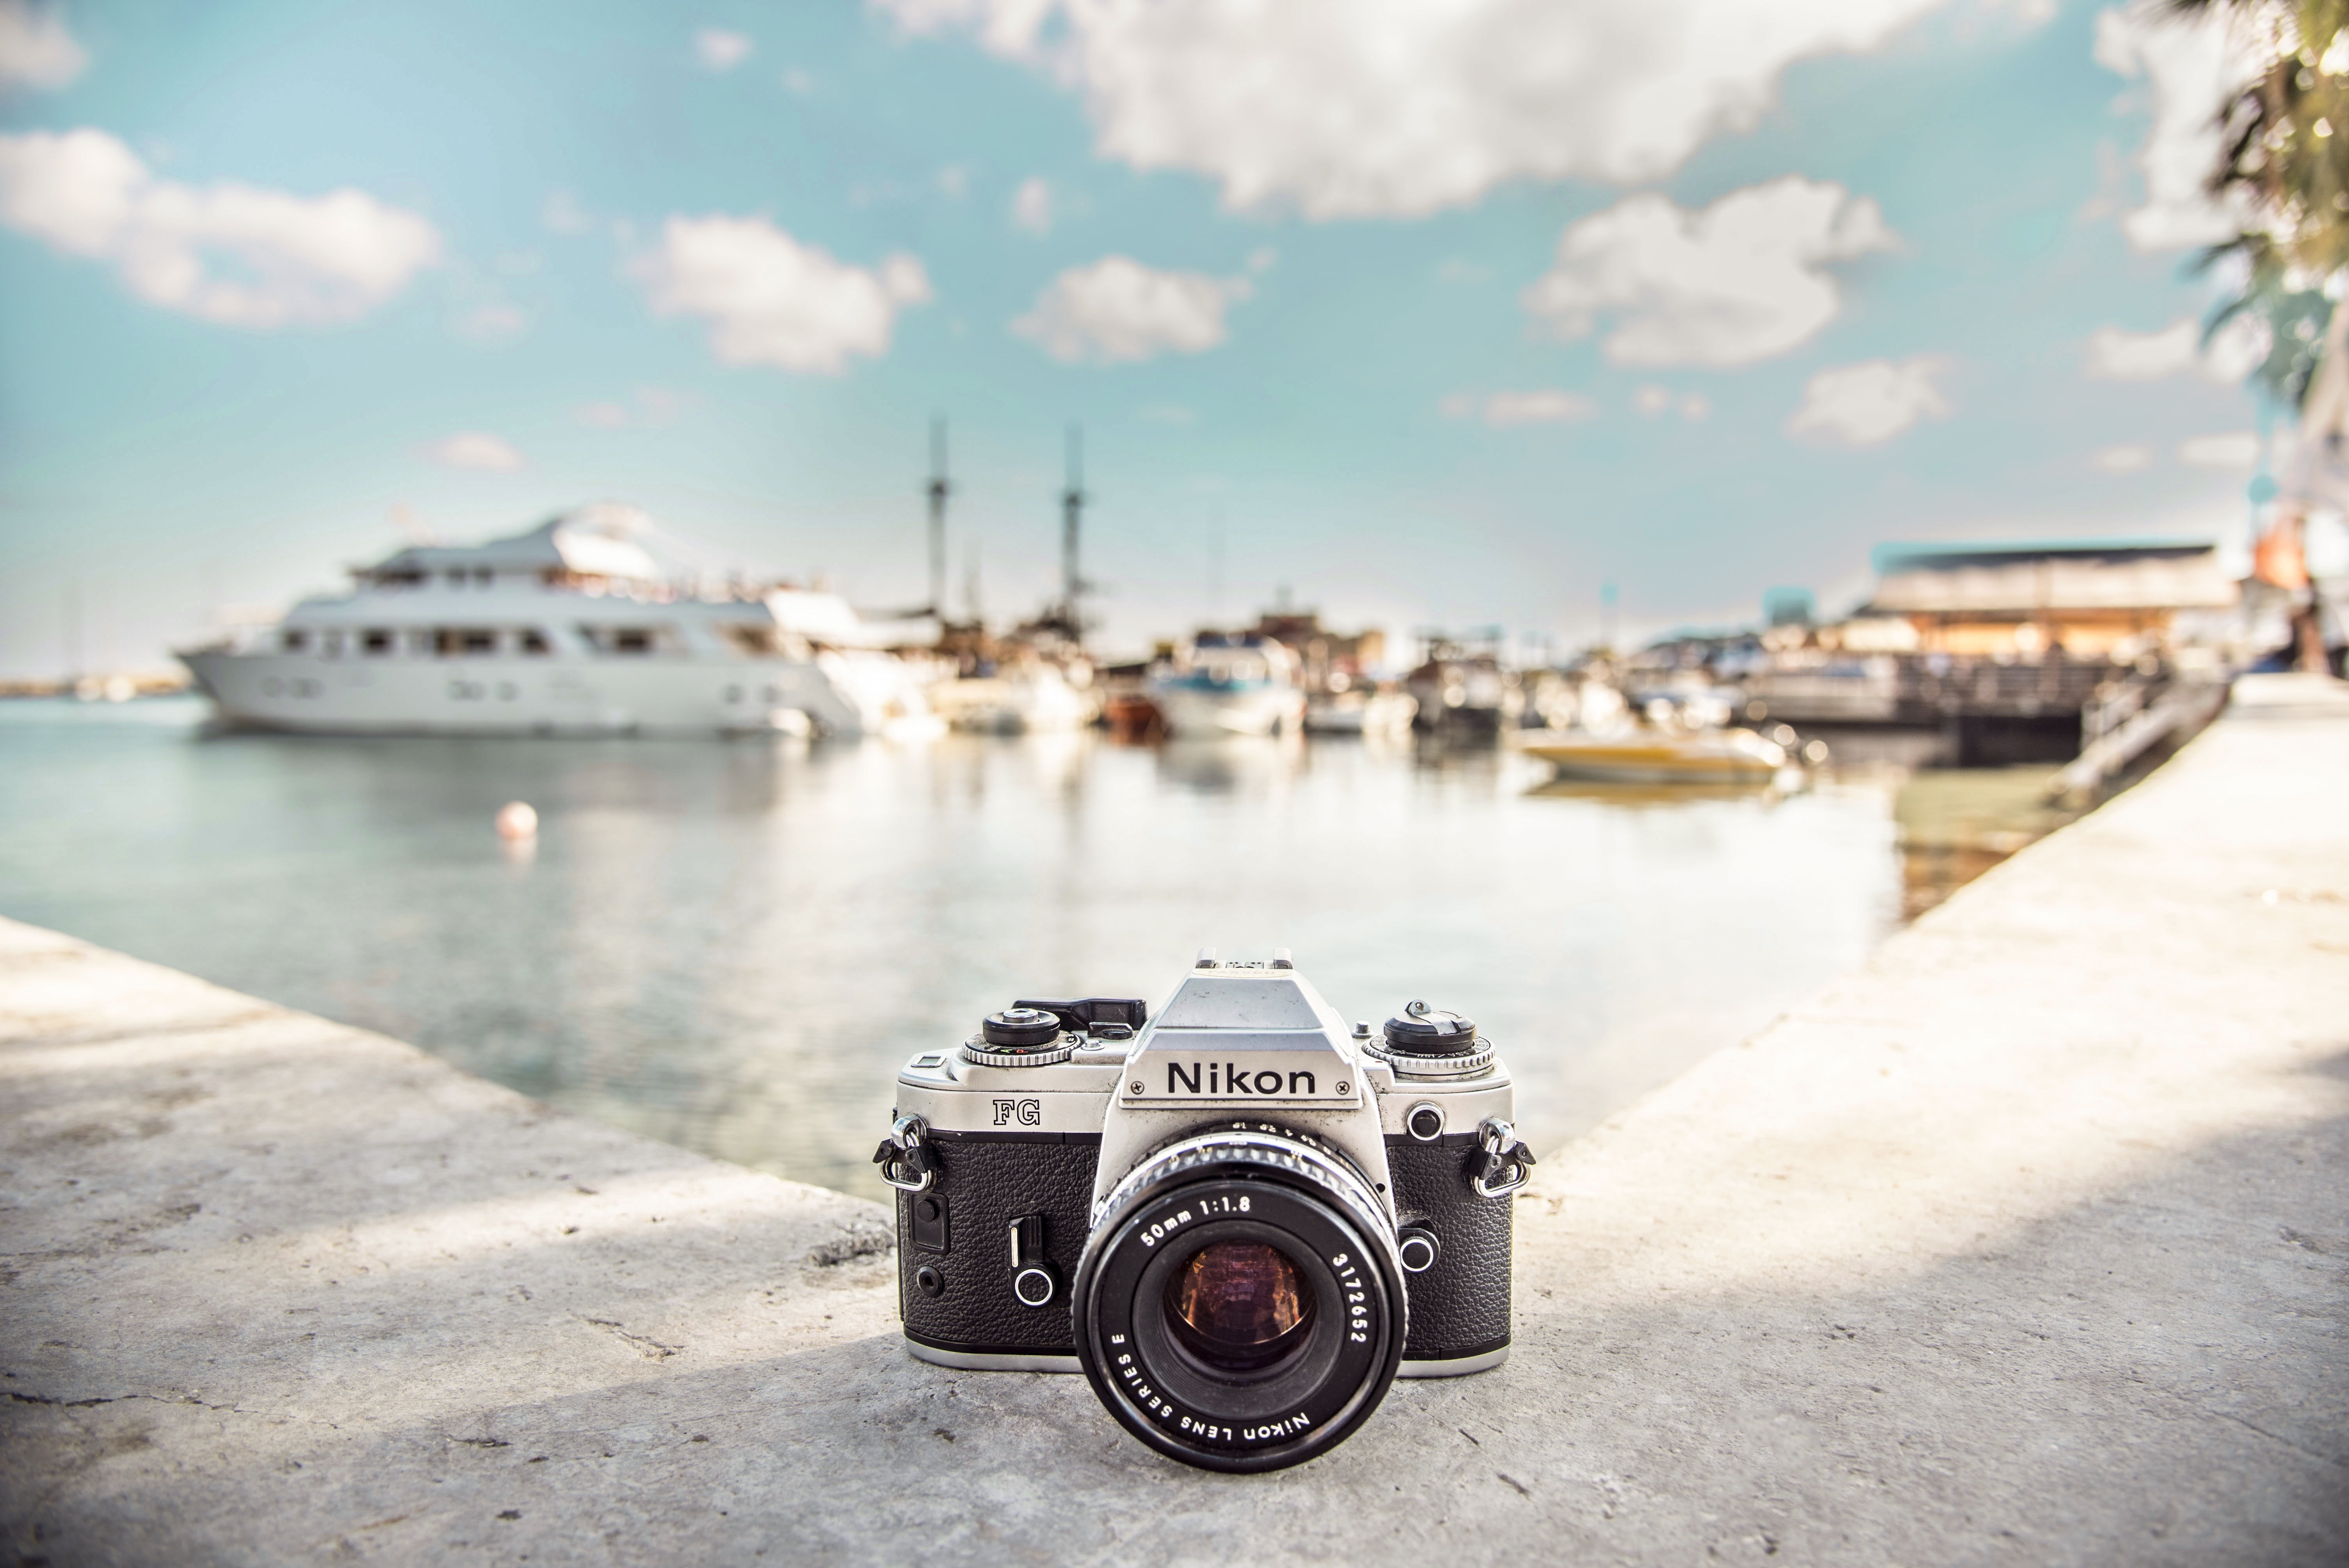 black and silver Nikon camera near boats during daytime